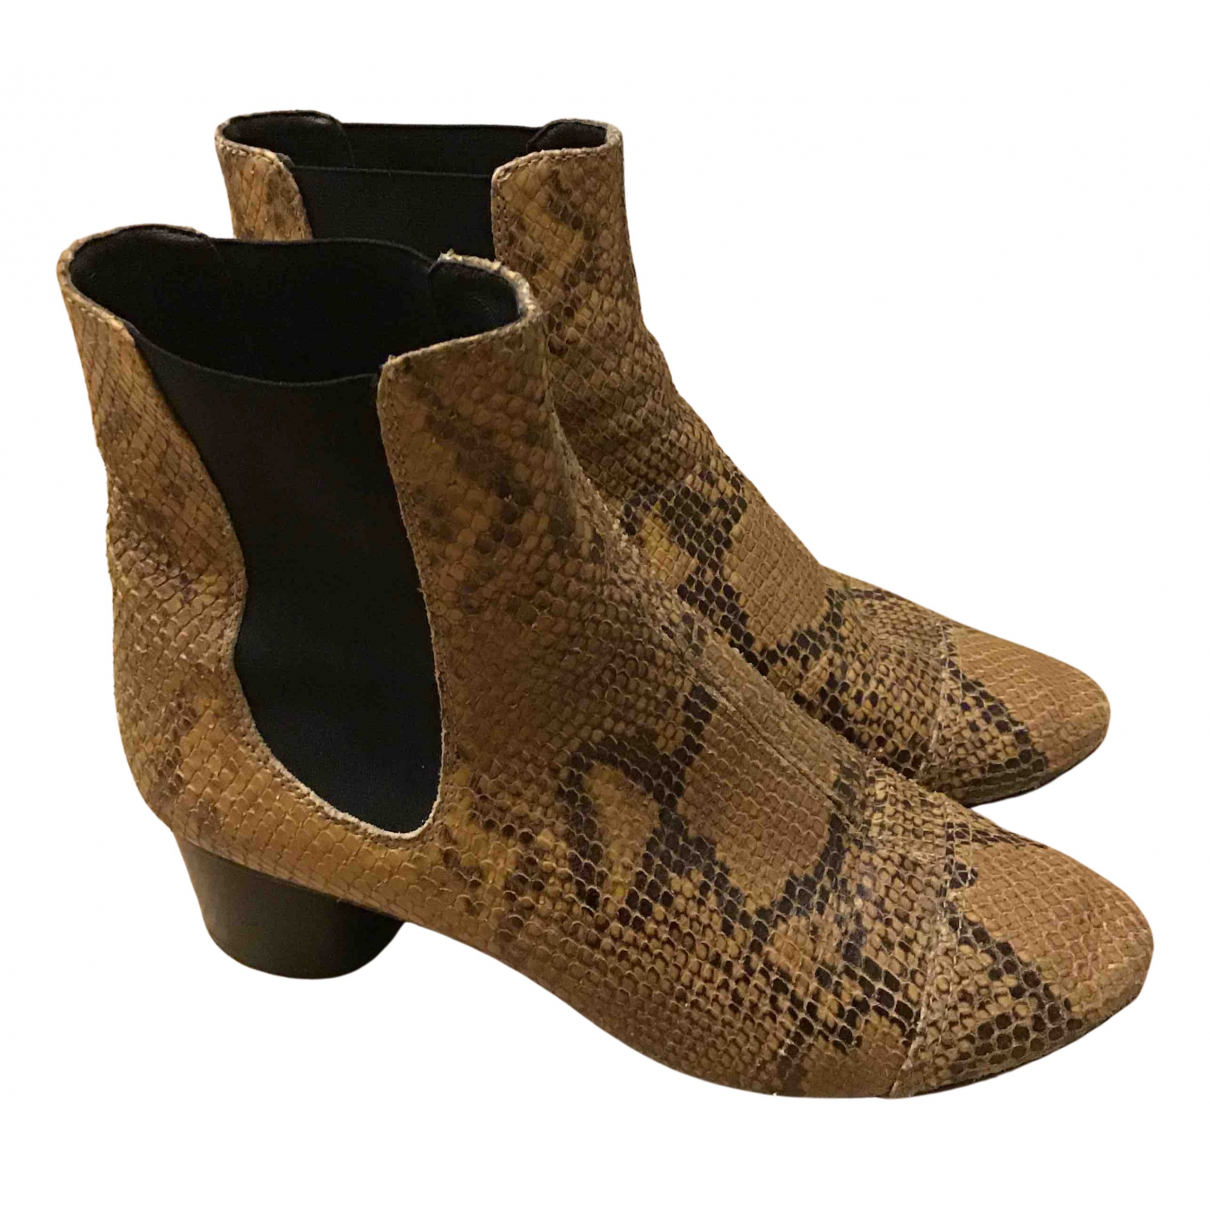 Isabel Marant N Camel Water snake Ankle boots for Women 37 EU